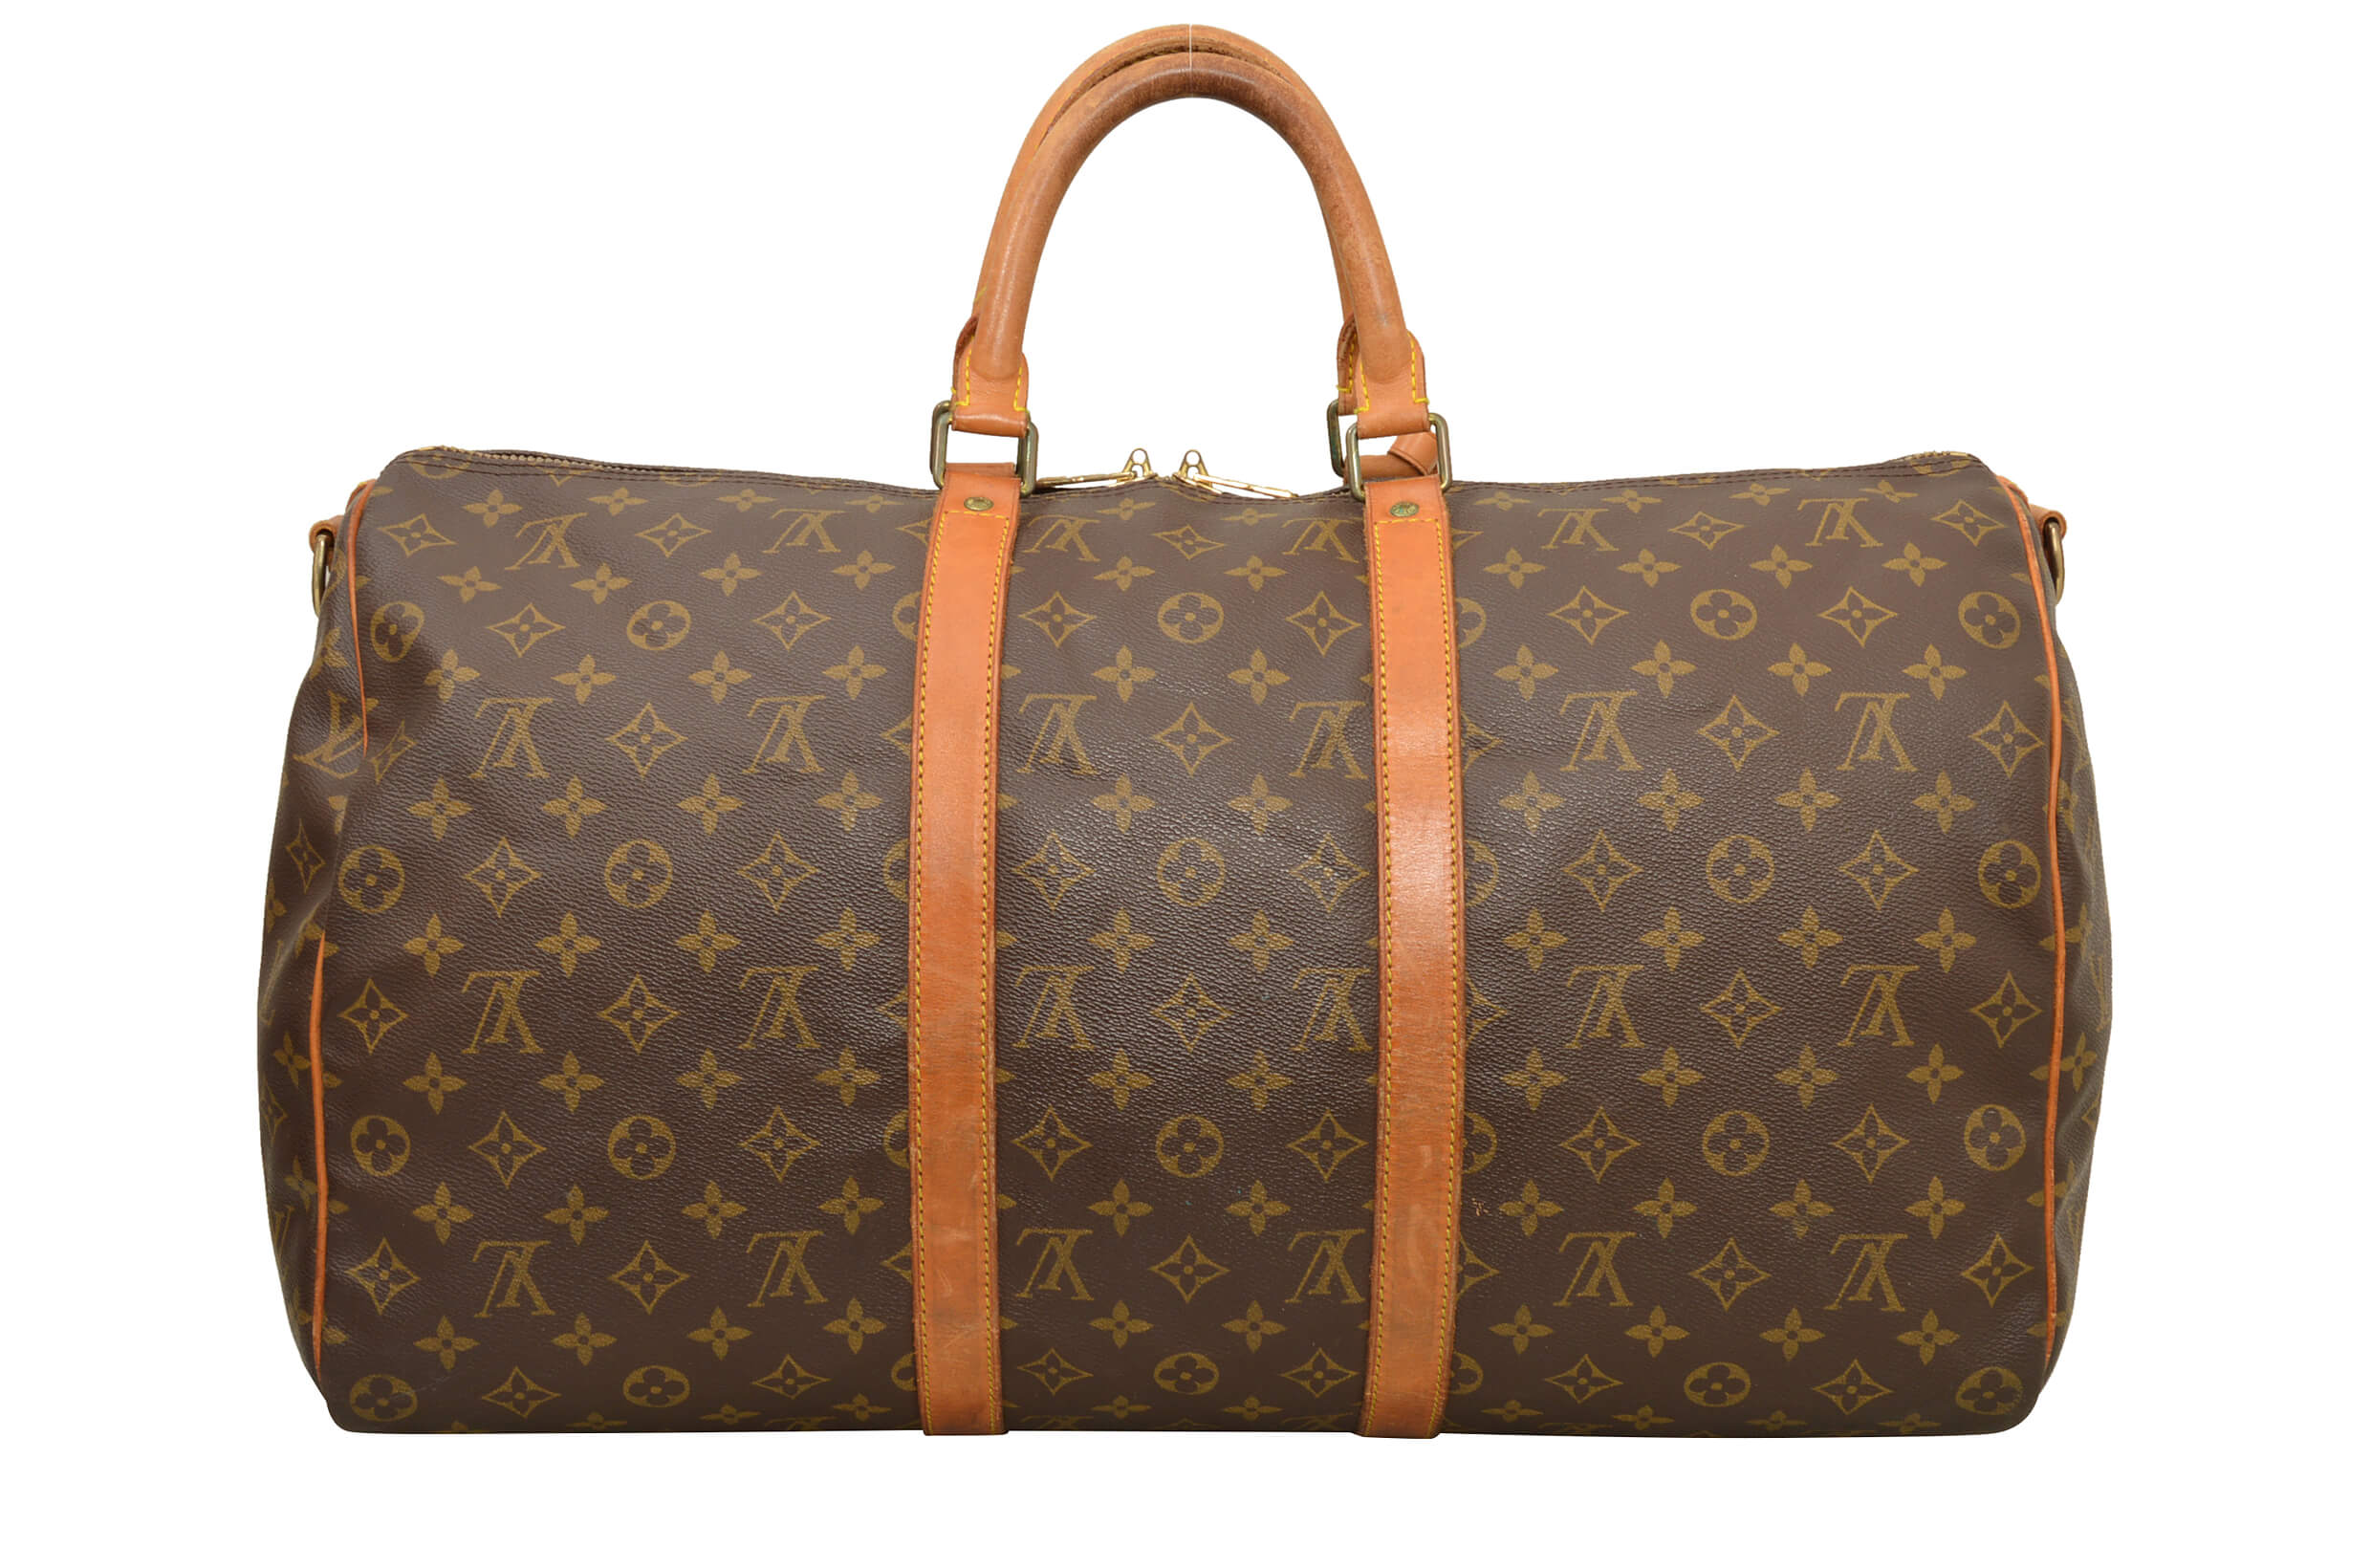 louis vuitton monogram keepall 50 bandouliere travel bag m41416 d02958 ebay. Black Bedroom Furniture Sets. Home Design Ideas